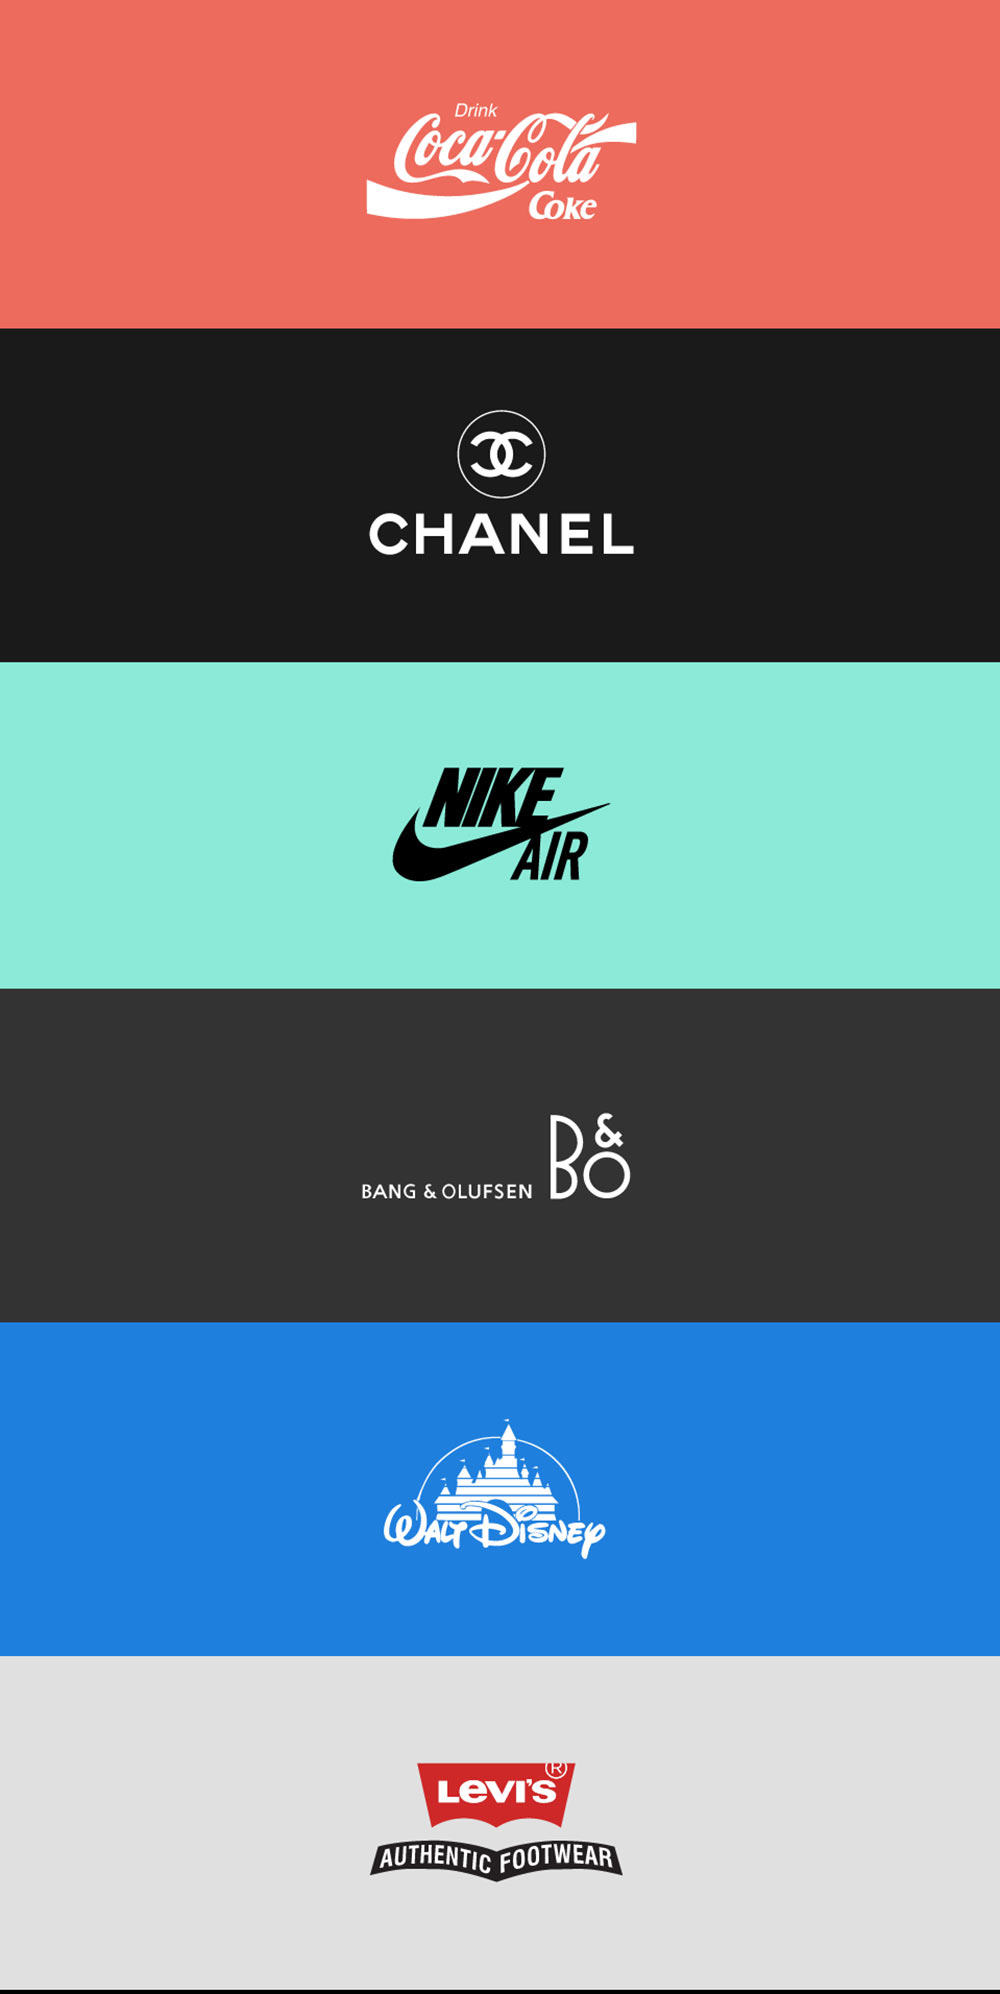 Responsive Logo Designs: Chanel, Coca Cola, Nike Air, Bang & Olufsen, Disney